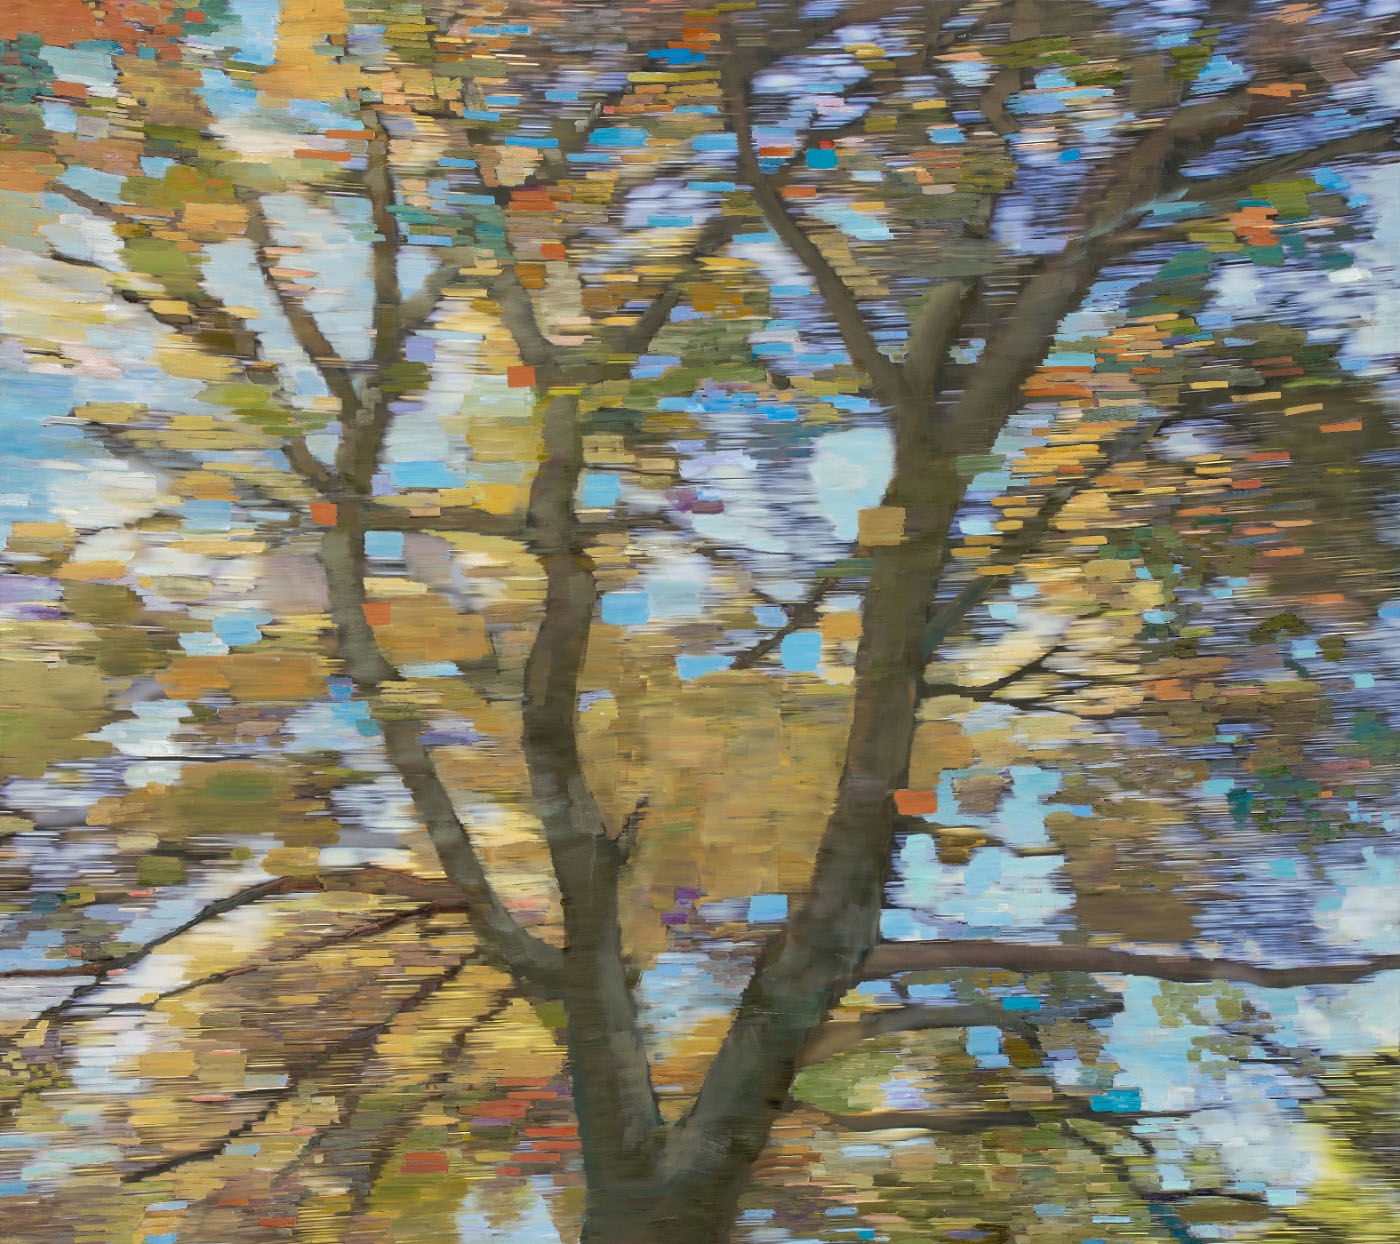 CHABOT OAK • oil and archival print on canvas • 44 by 48 inches • 2016